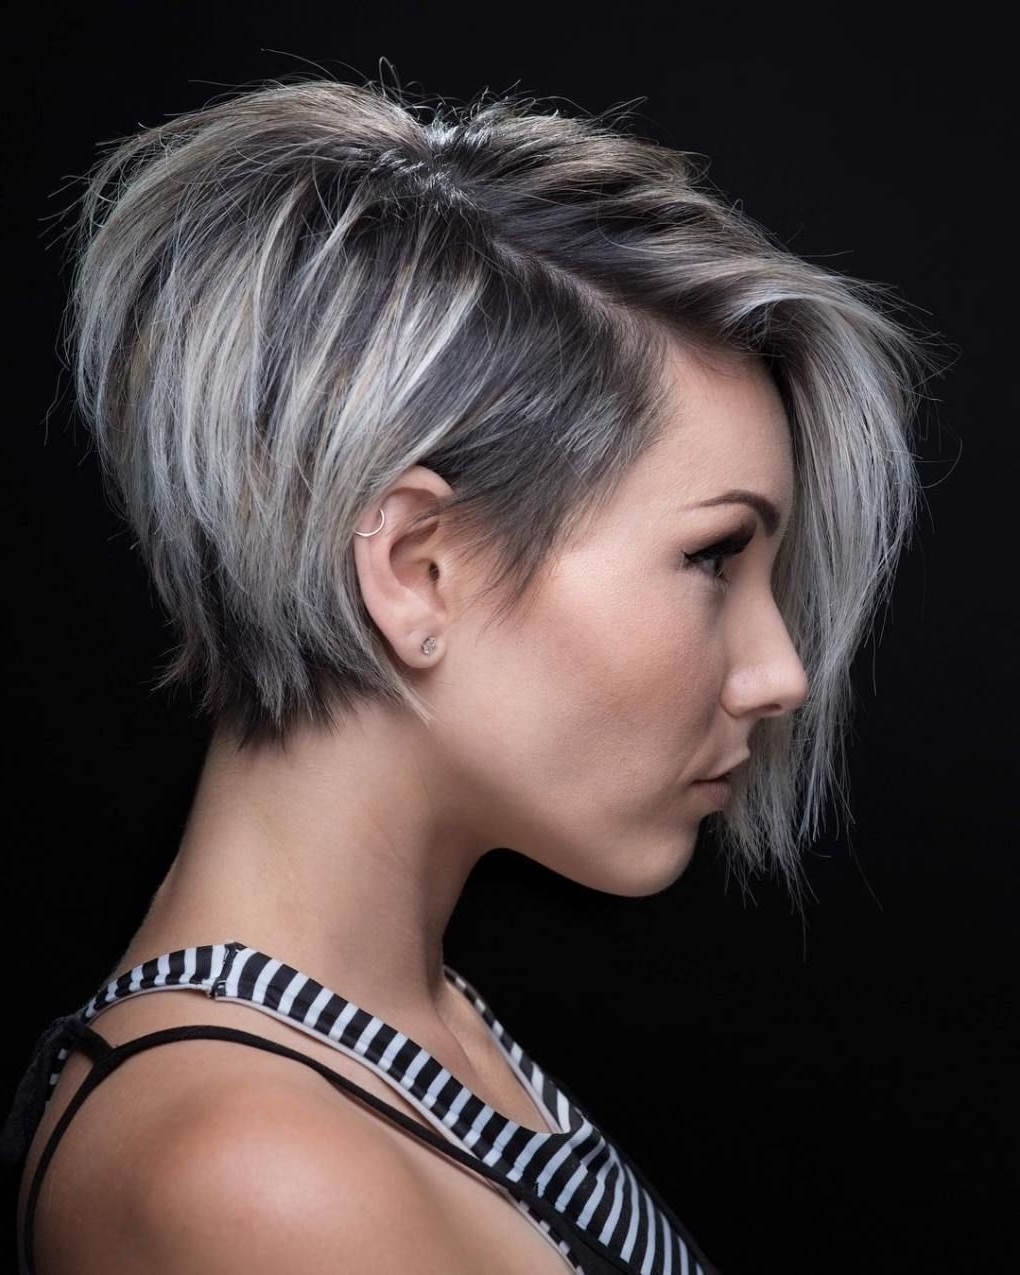 70 Short Shaggy, Spiky, Edgy Pixie Cuts And Hairstyles | Long Bangs Within Most Recent Stacked Pixie Bob Haircuts With Long Bangs (Gallery 2 of 15)